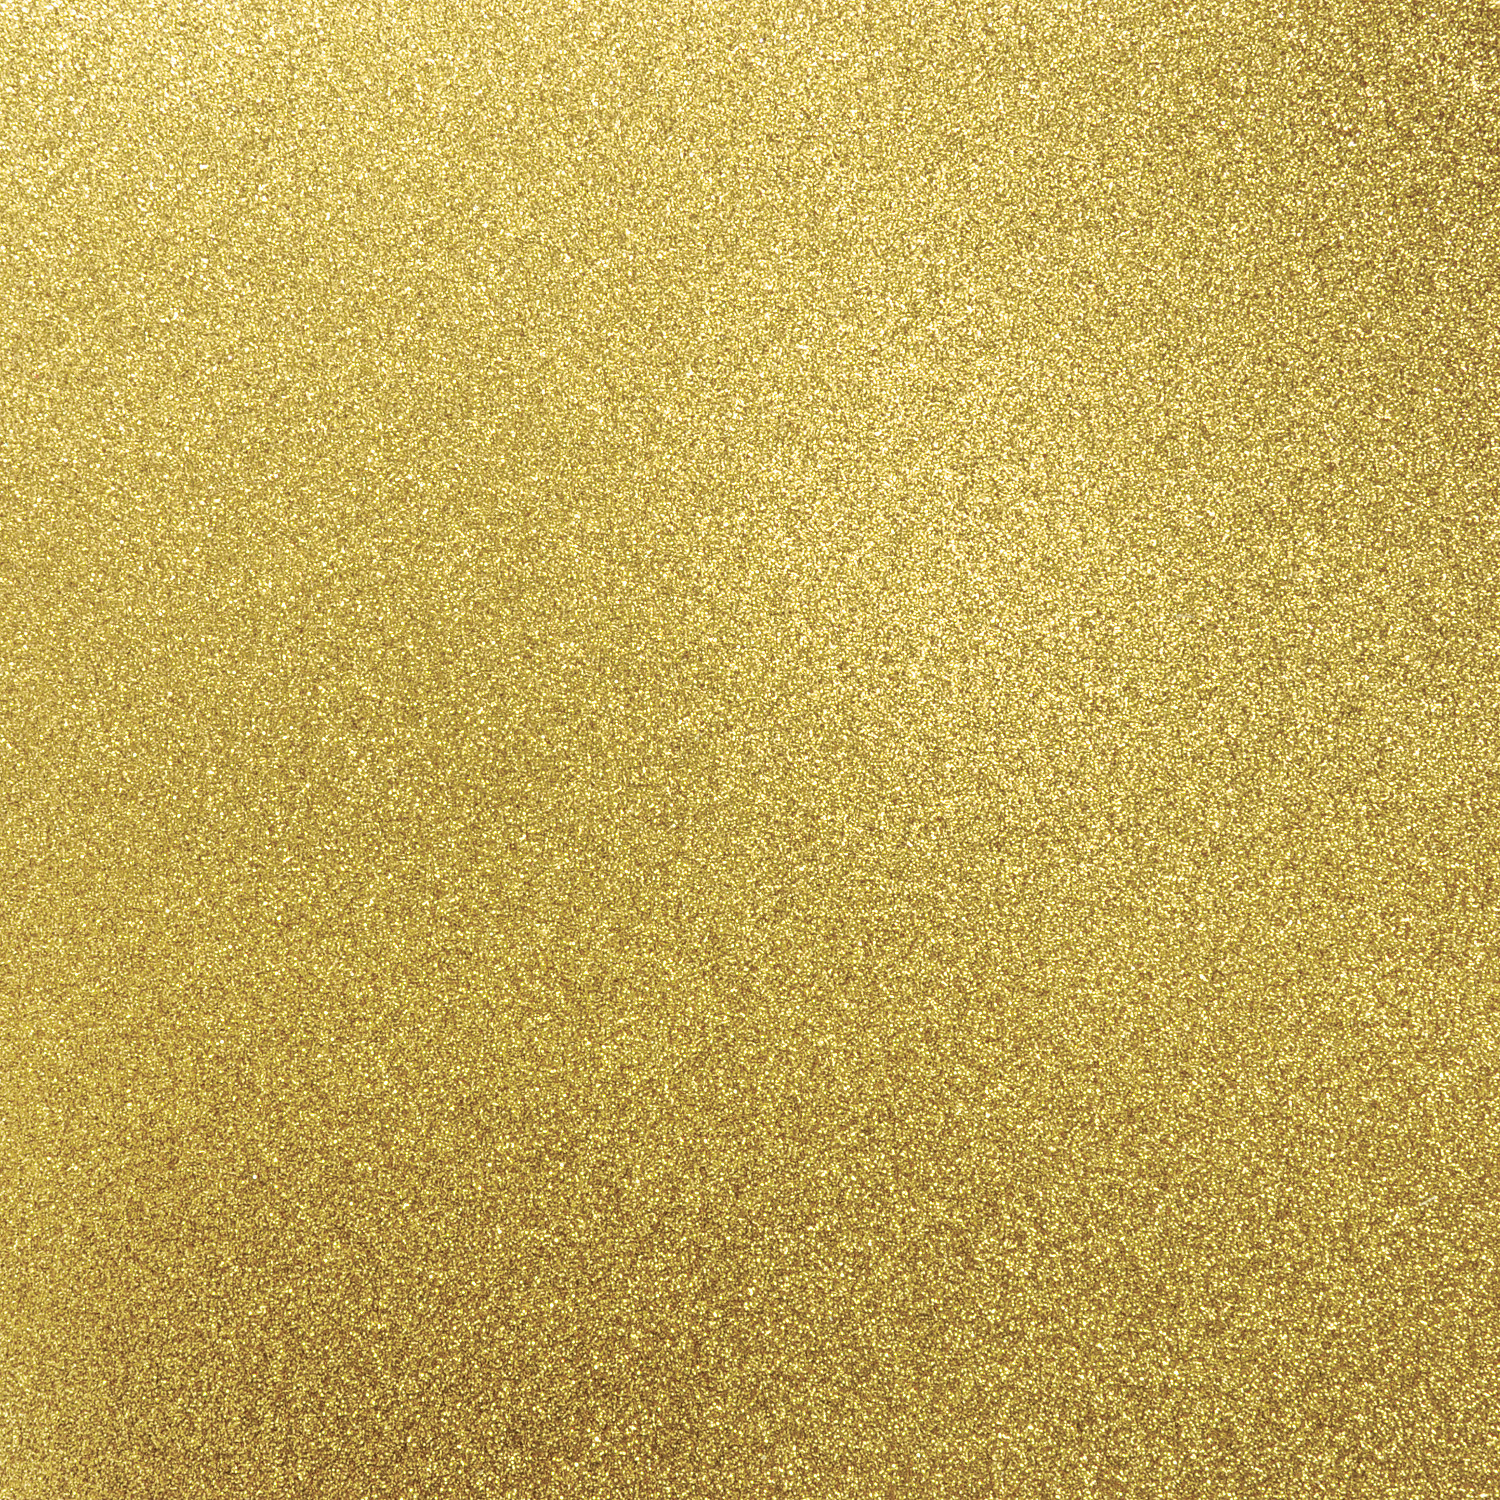 How to scrapbook with glitter paper - Add A Touch Of Glamour With The High Quality 300gsm Cardstock Available In Rich Jewel Bright Colours Each Sheet Is Single Sided Great For Die Cutting